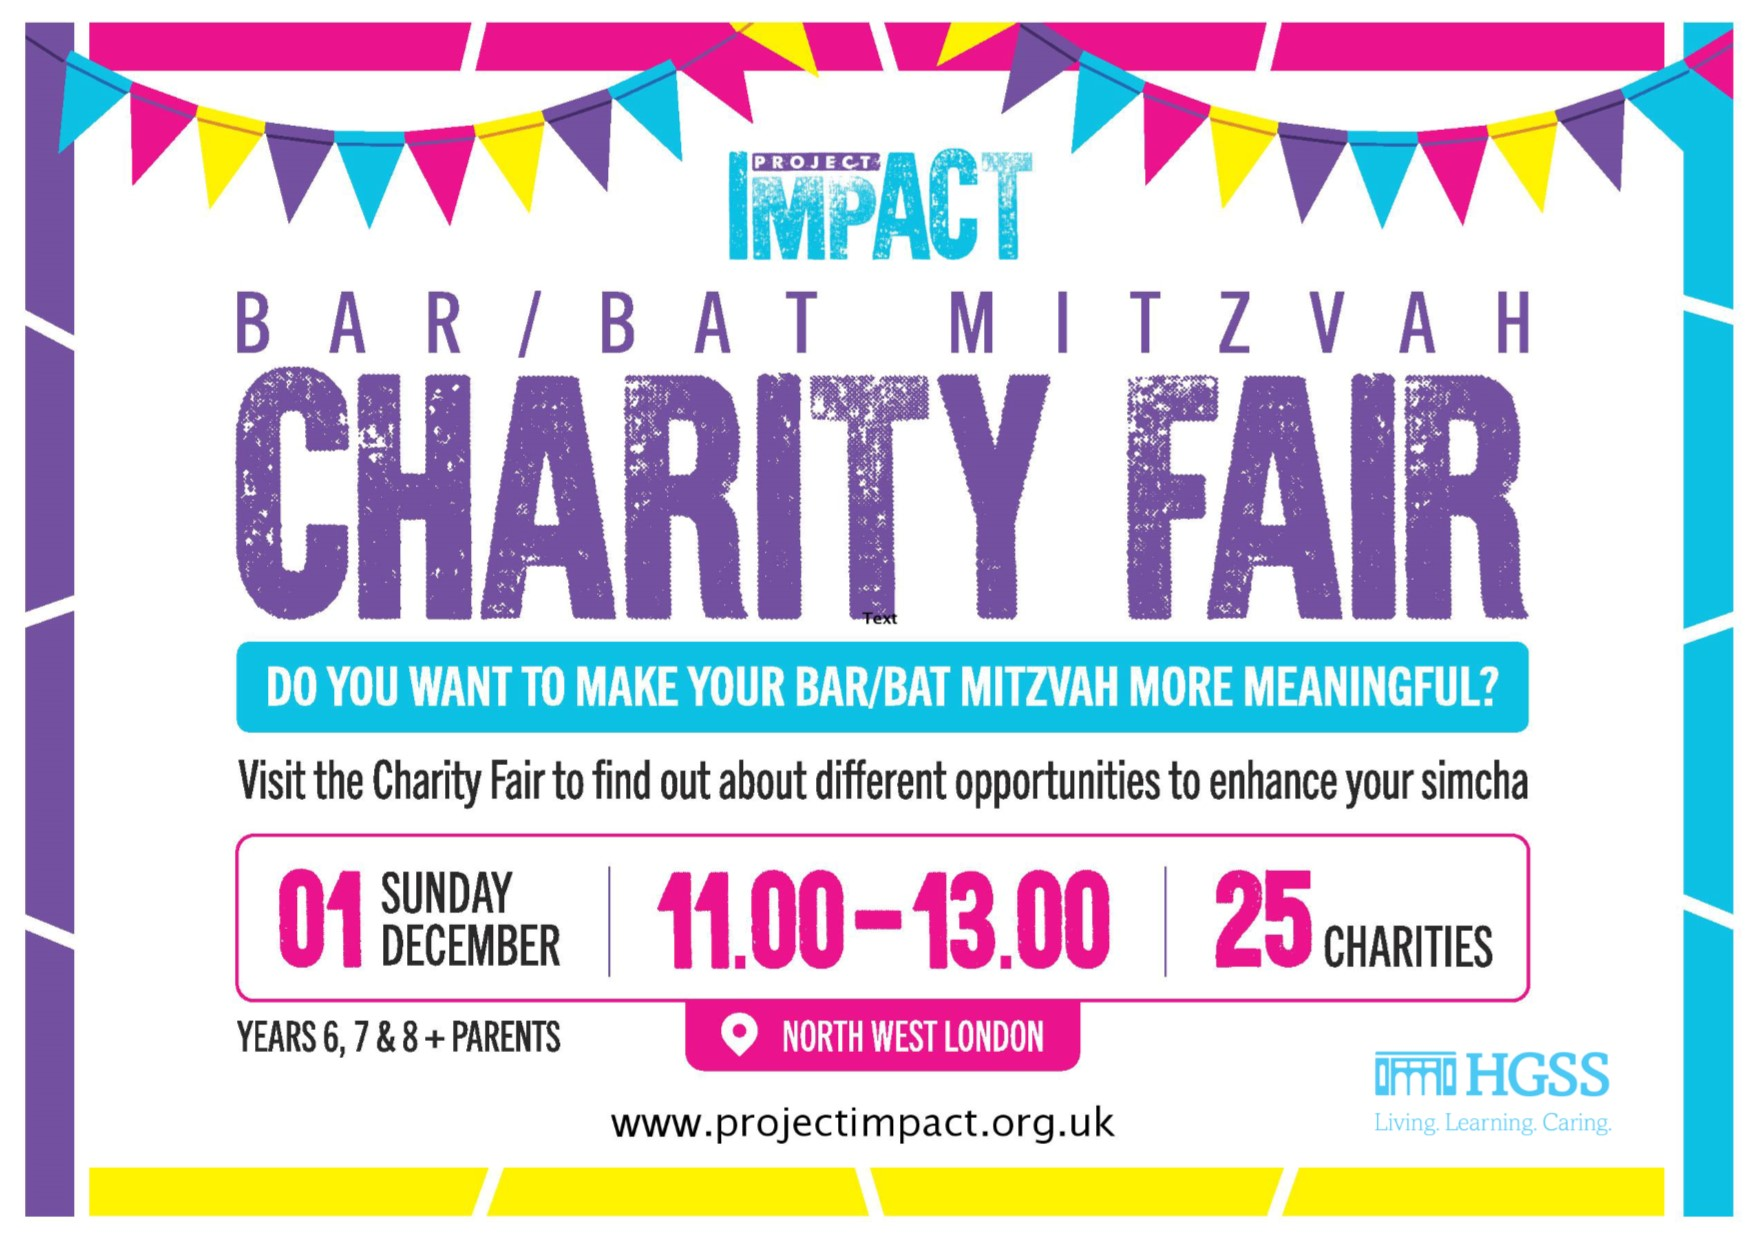 Bar/Bat Mitzvah Charity Fair @ Max Weinbaum Hall | England | United Kingdom